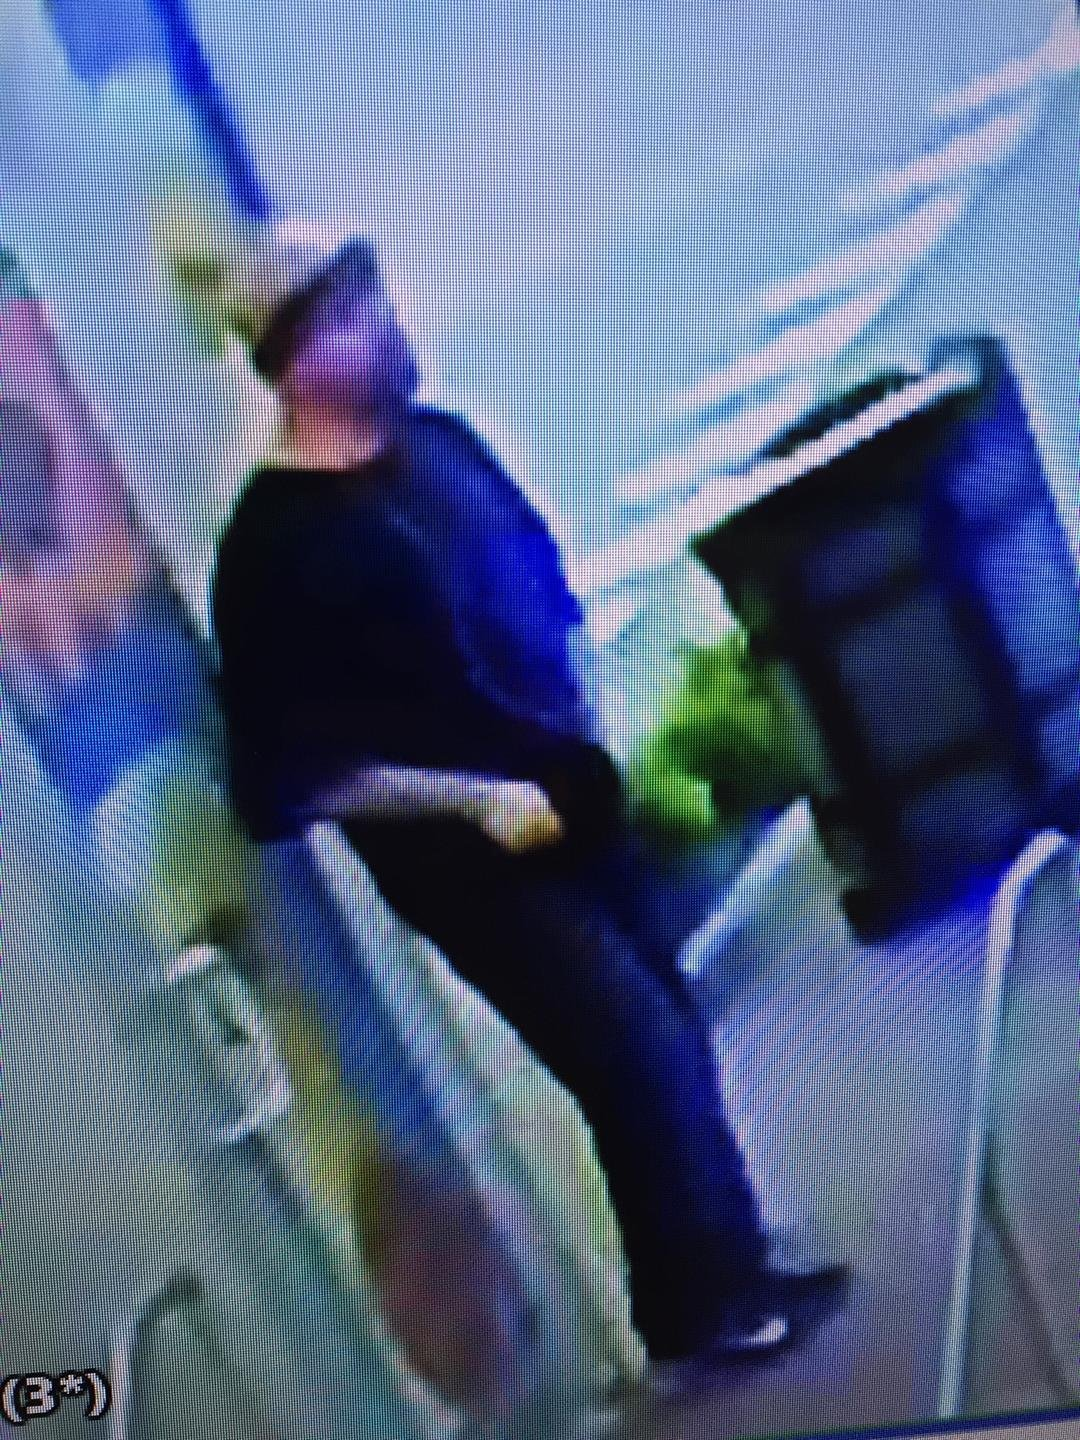 Police are seeking informationon a person of interestwanted in connection with a robbery in the Power & Light District. (KCPD)